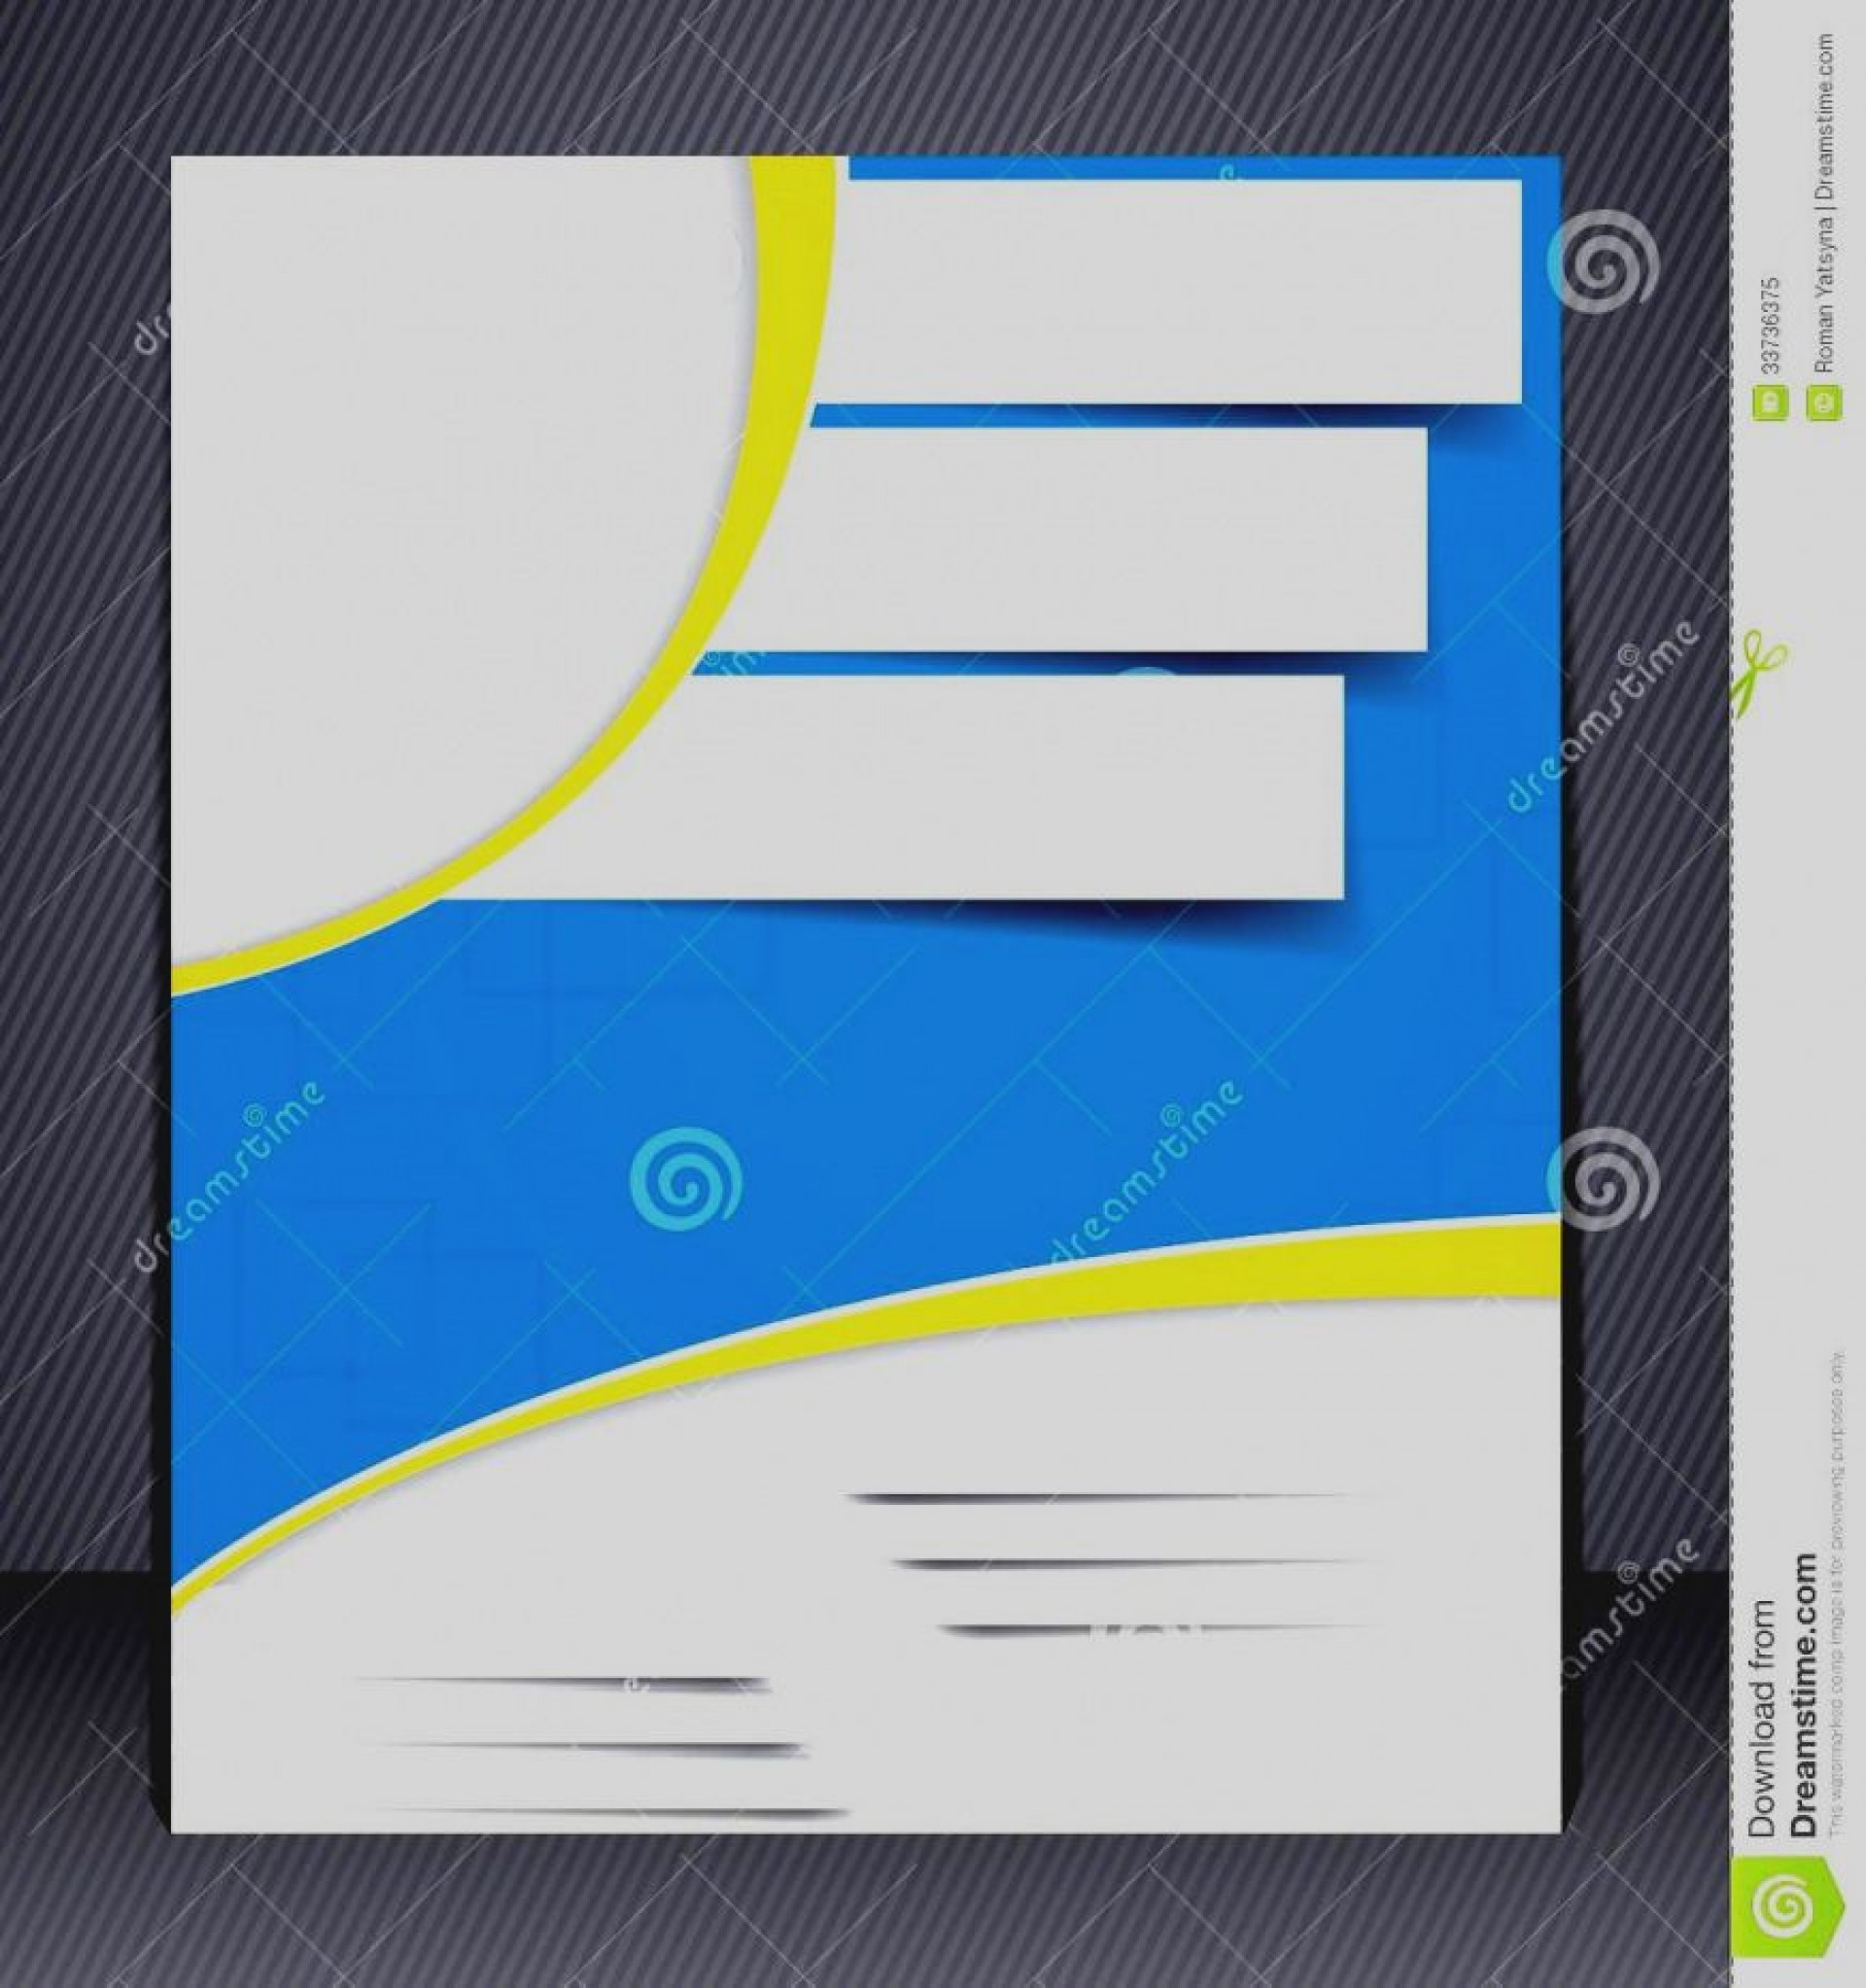 003 Rare Free Download Flyer Template High Definition  Templates Blank Leaflet Word Psd1920